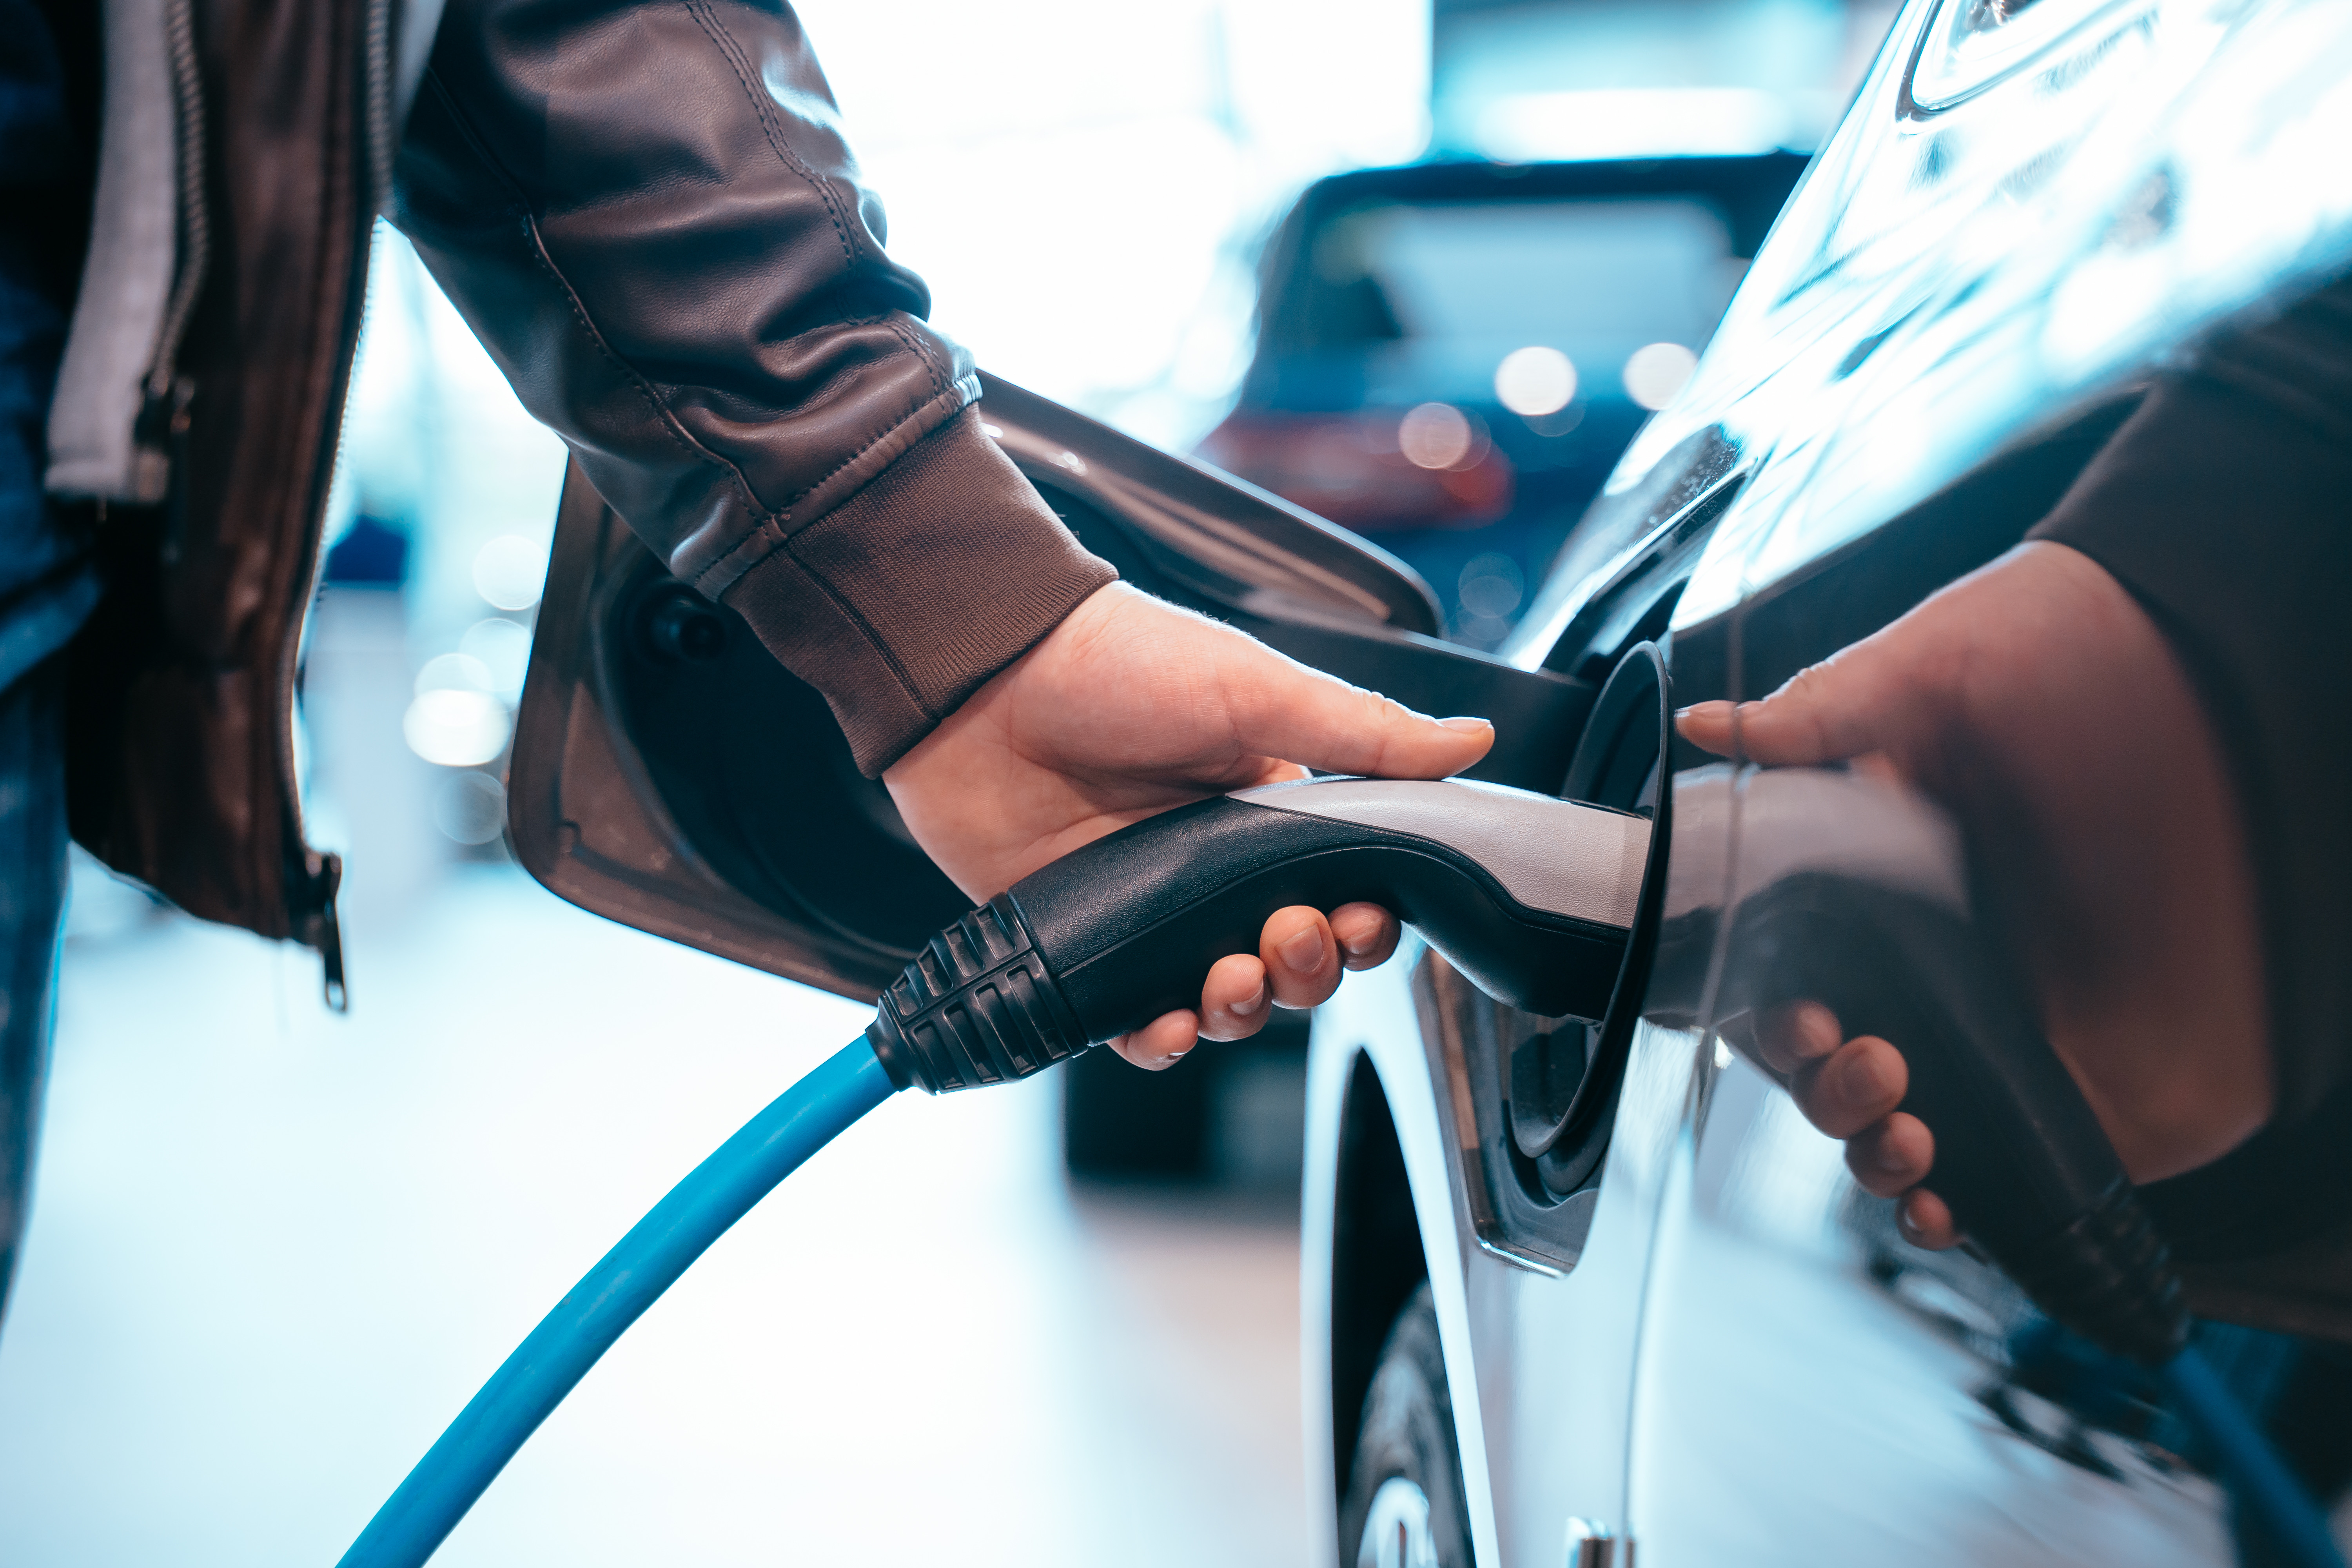 Closes up Human hand is holding Electric Car Charging connect to Electric car